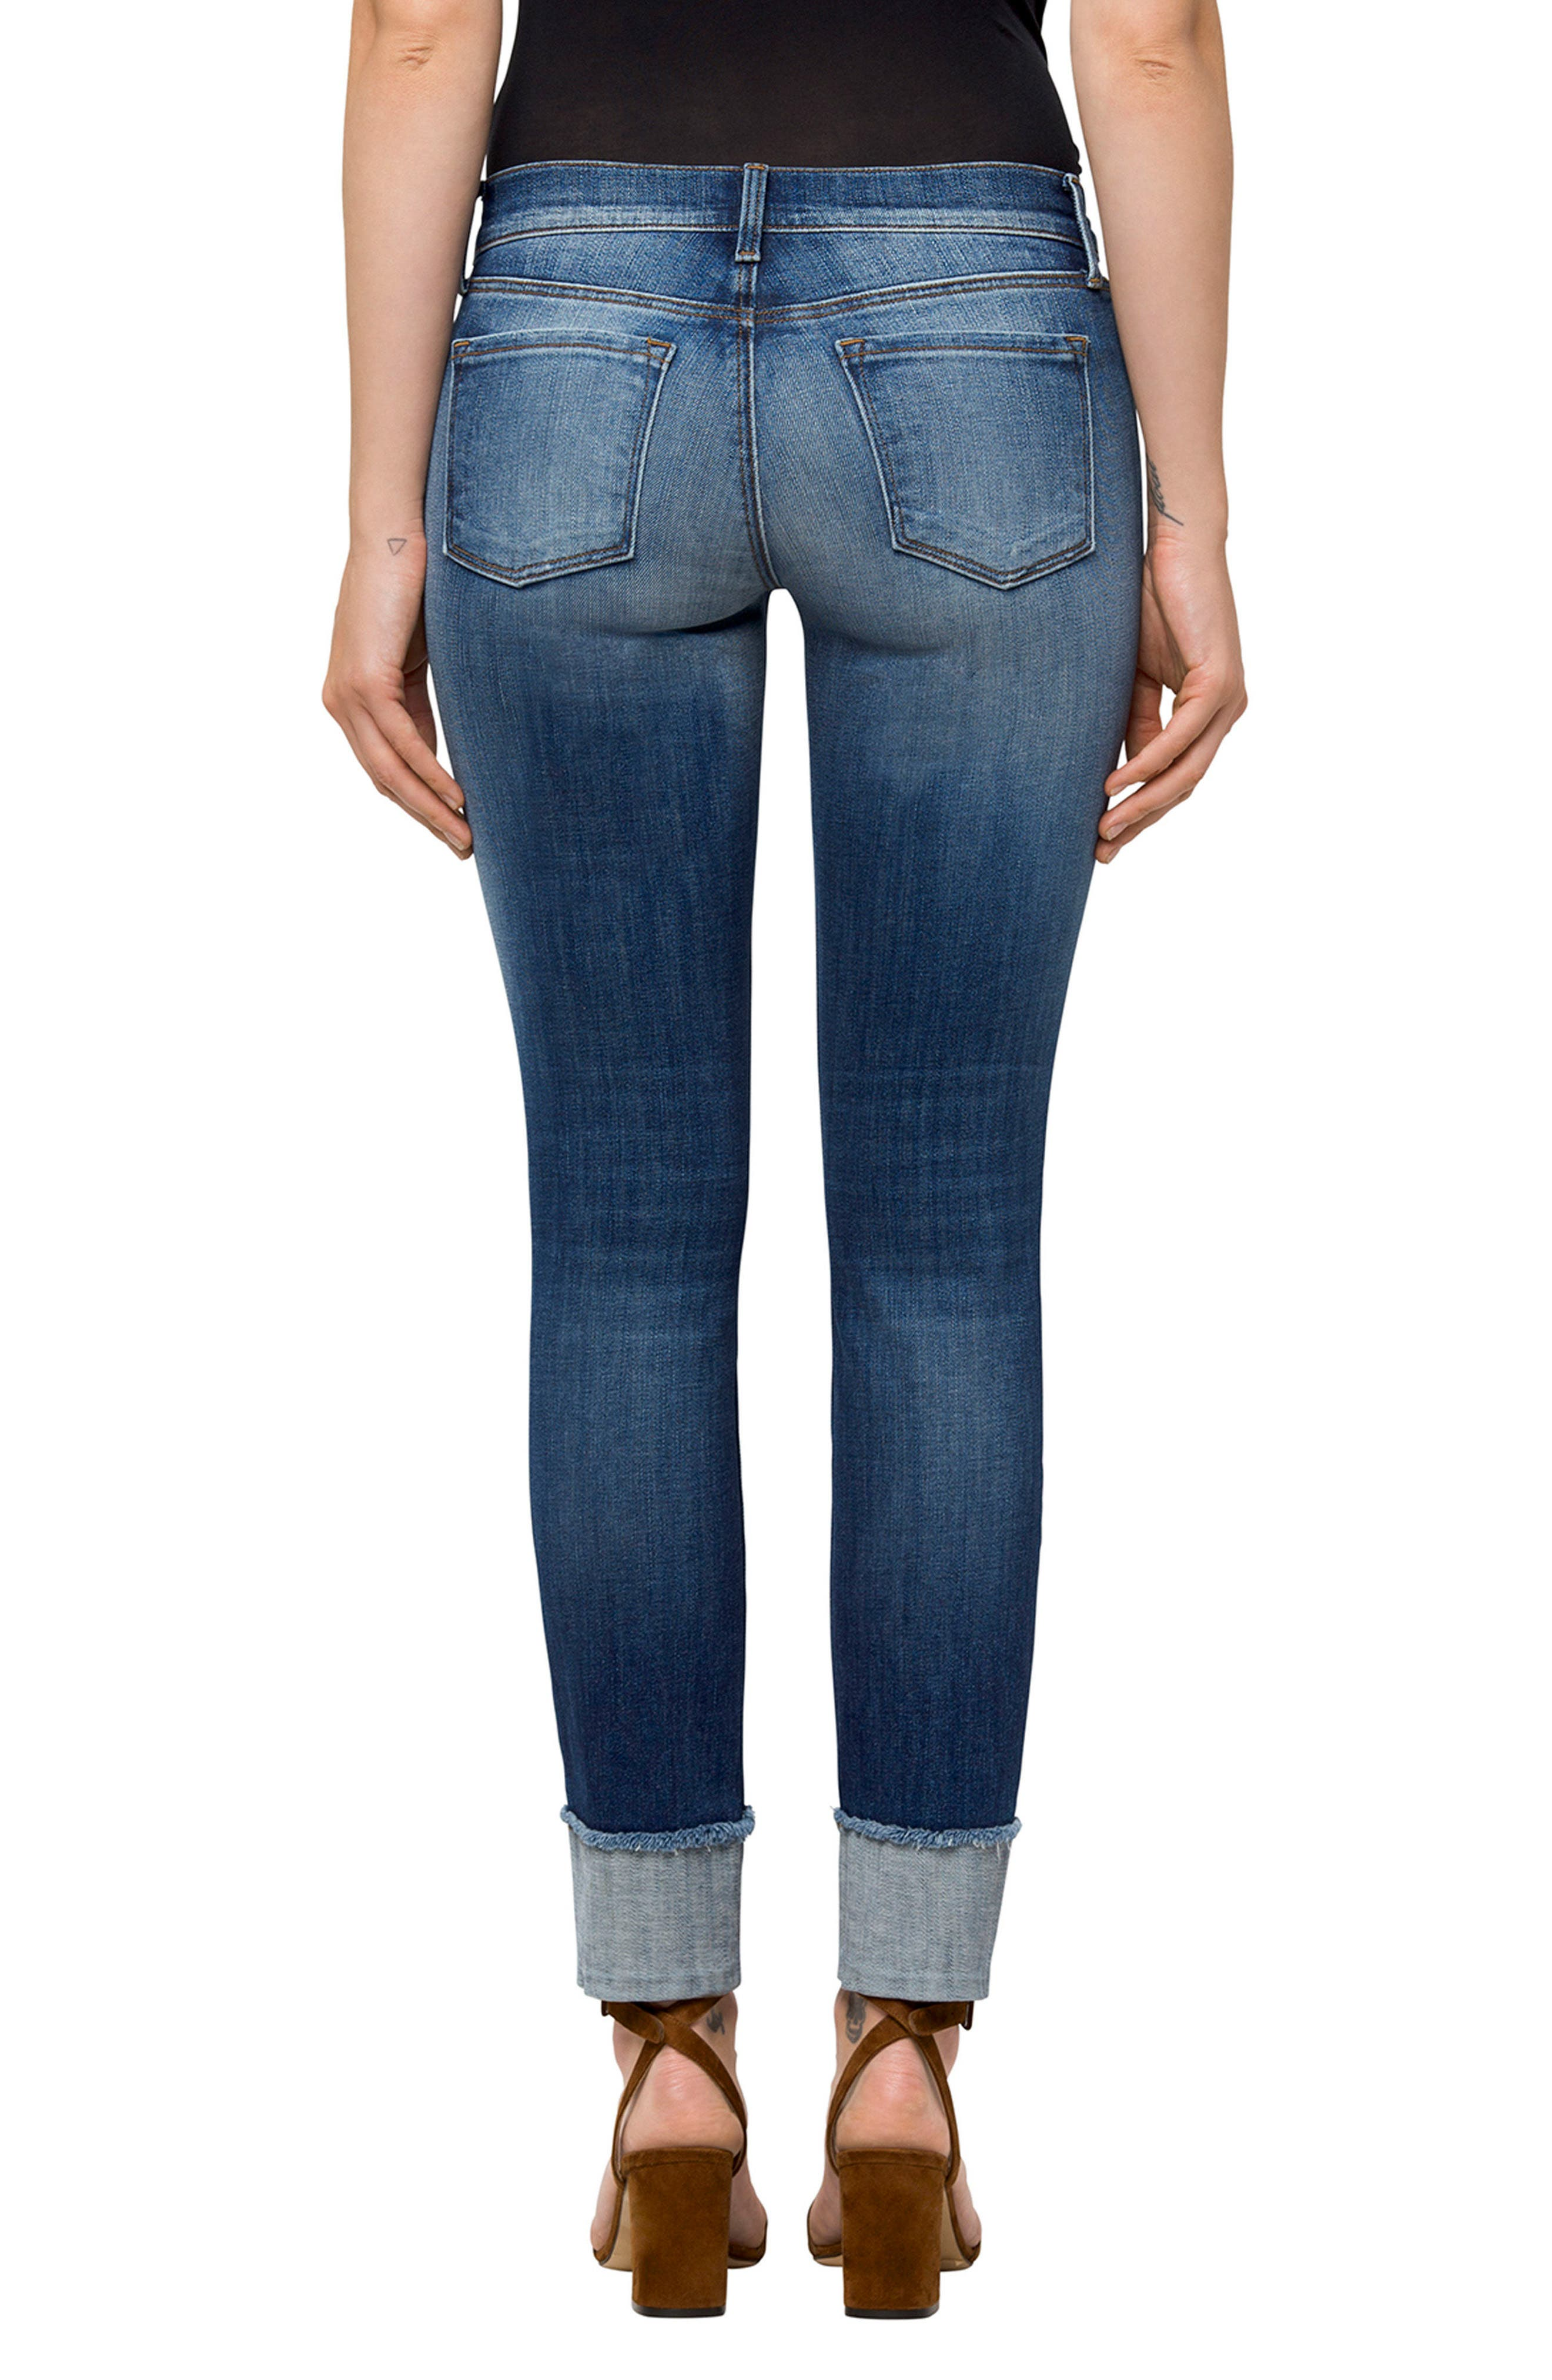 Hipster Low Rise Jeans,                             Alternate thumbnail 2, color,                             Jasper